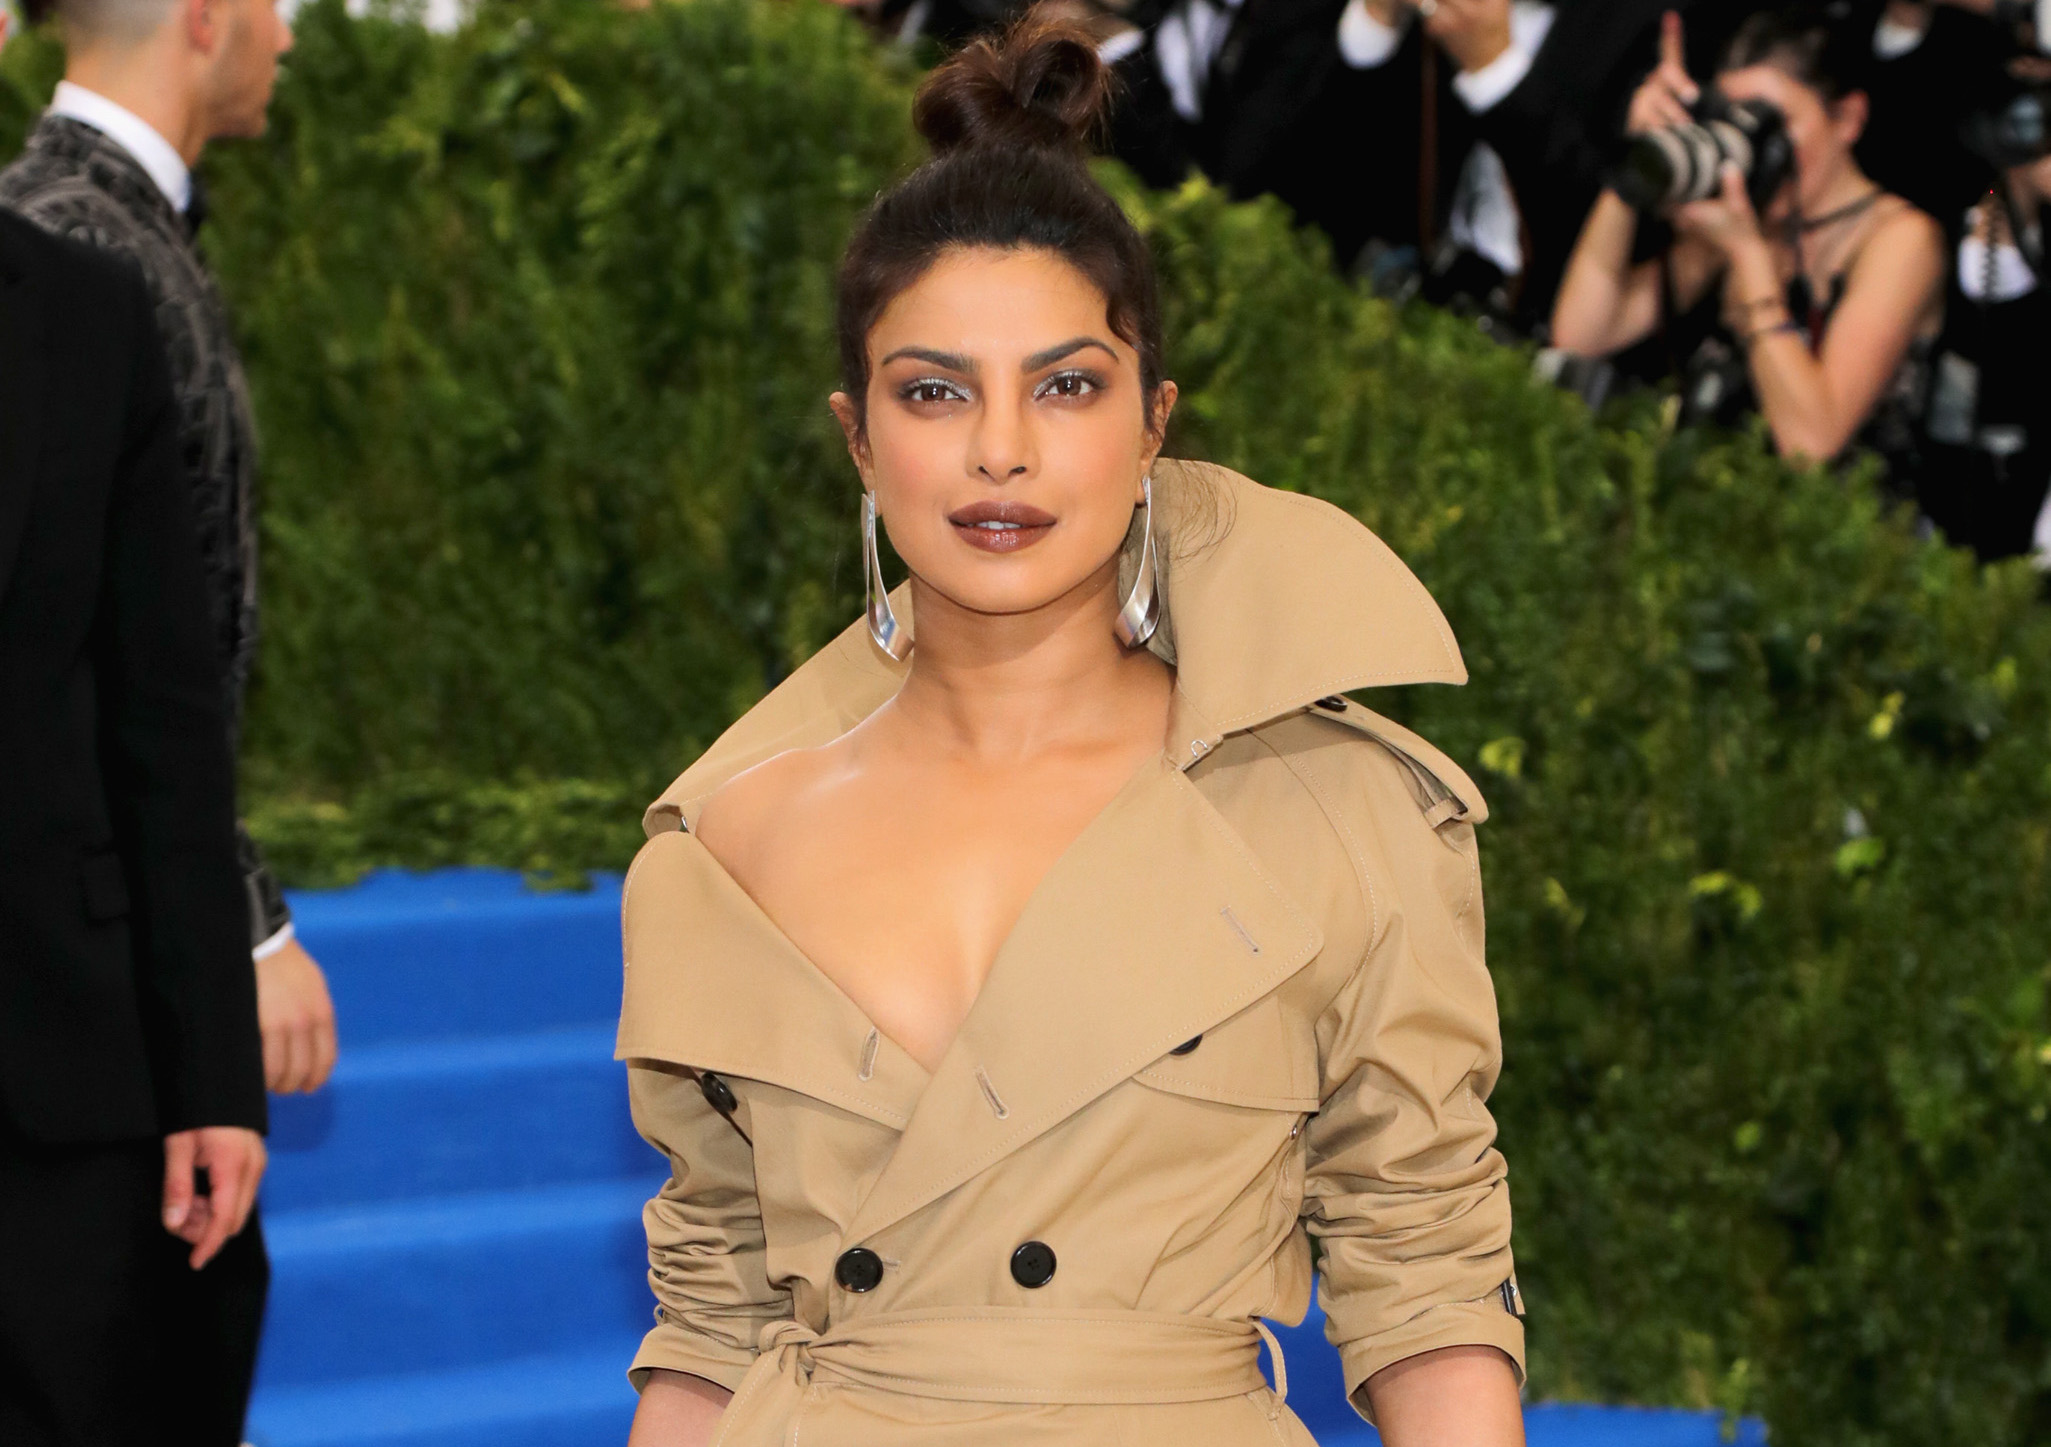 Priyanka Chopra *almost* looks like Carmen Sandiego at the Met Gala